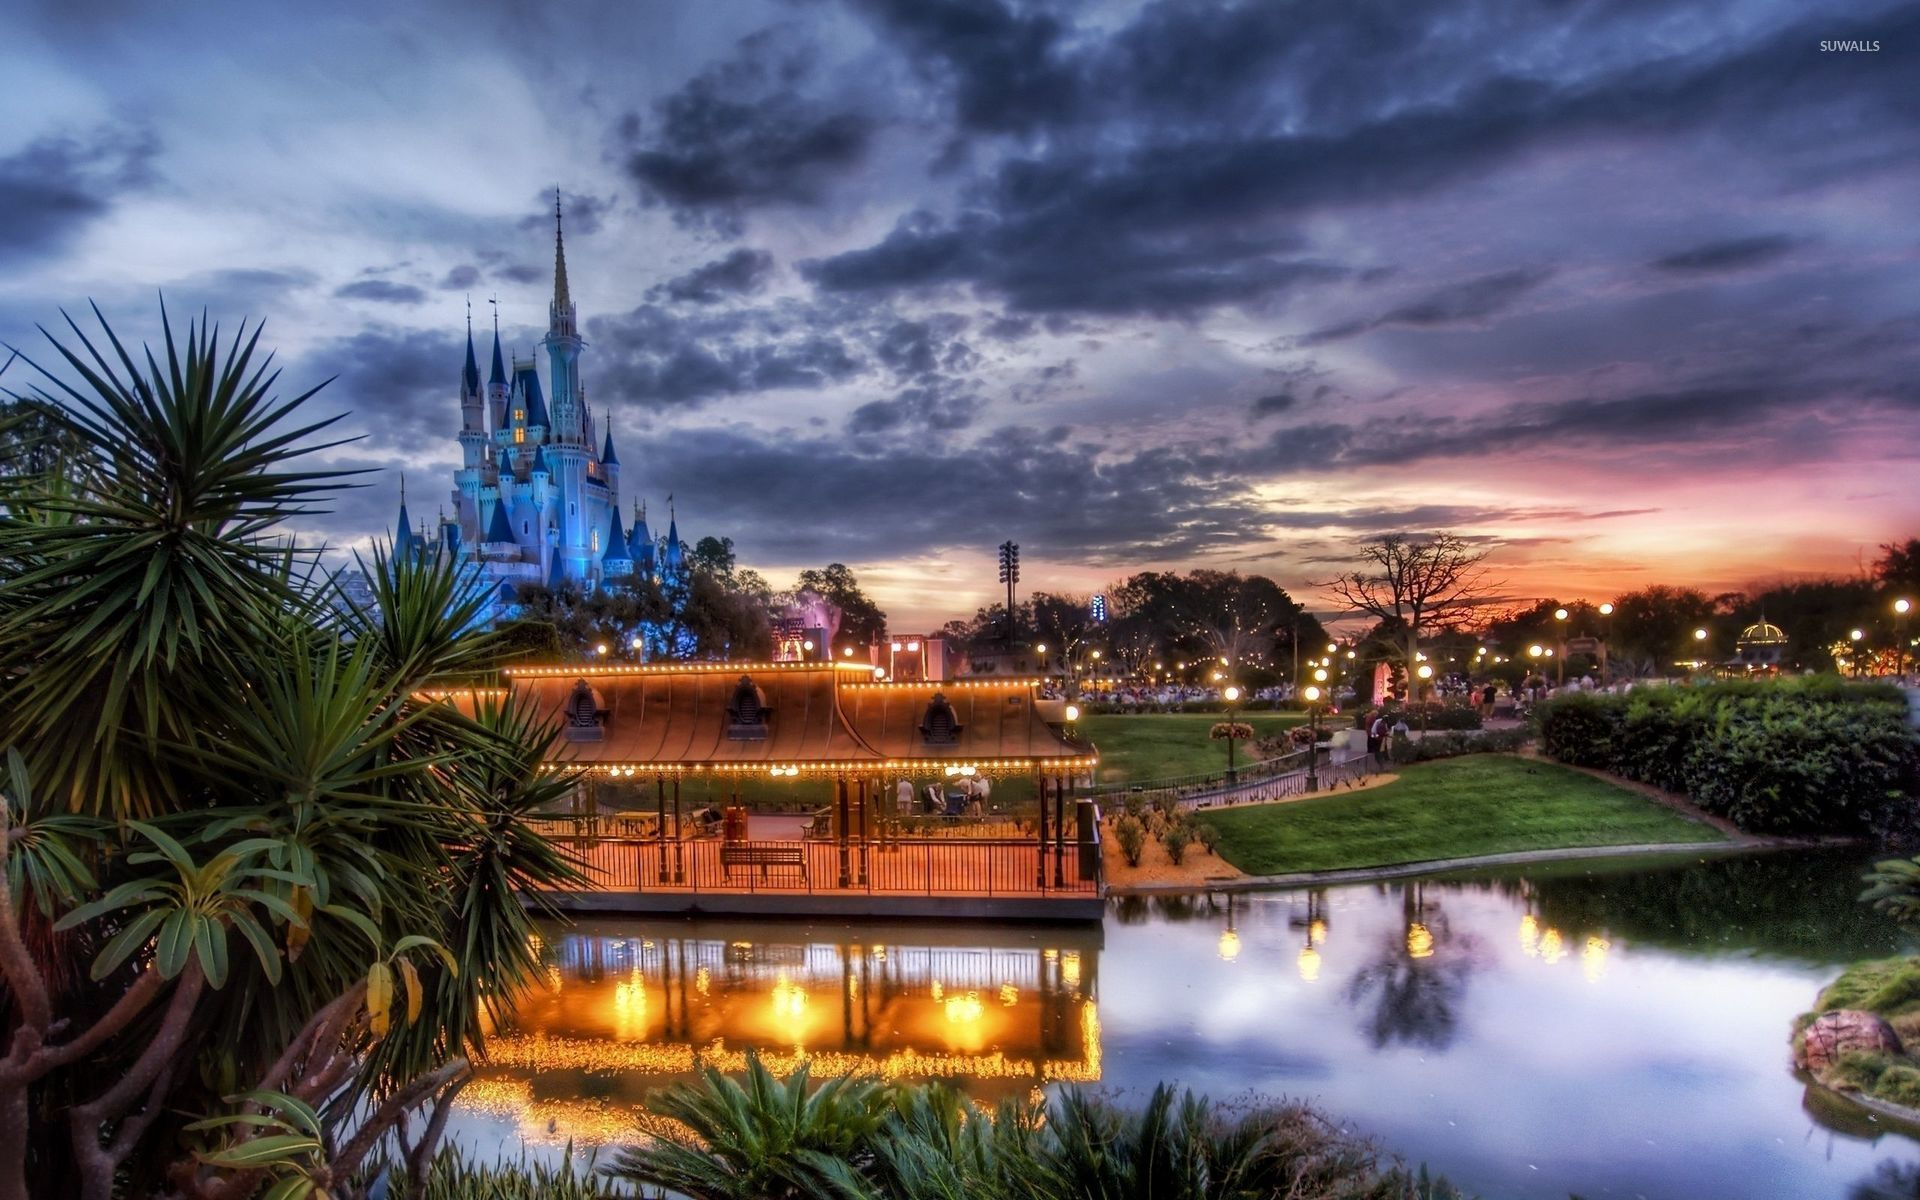 walt disney world resort in orlando wallpaper world